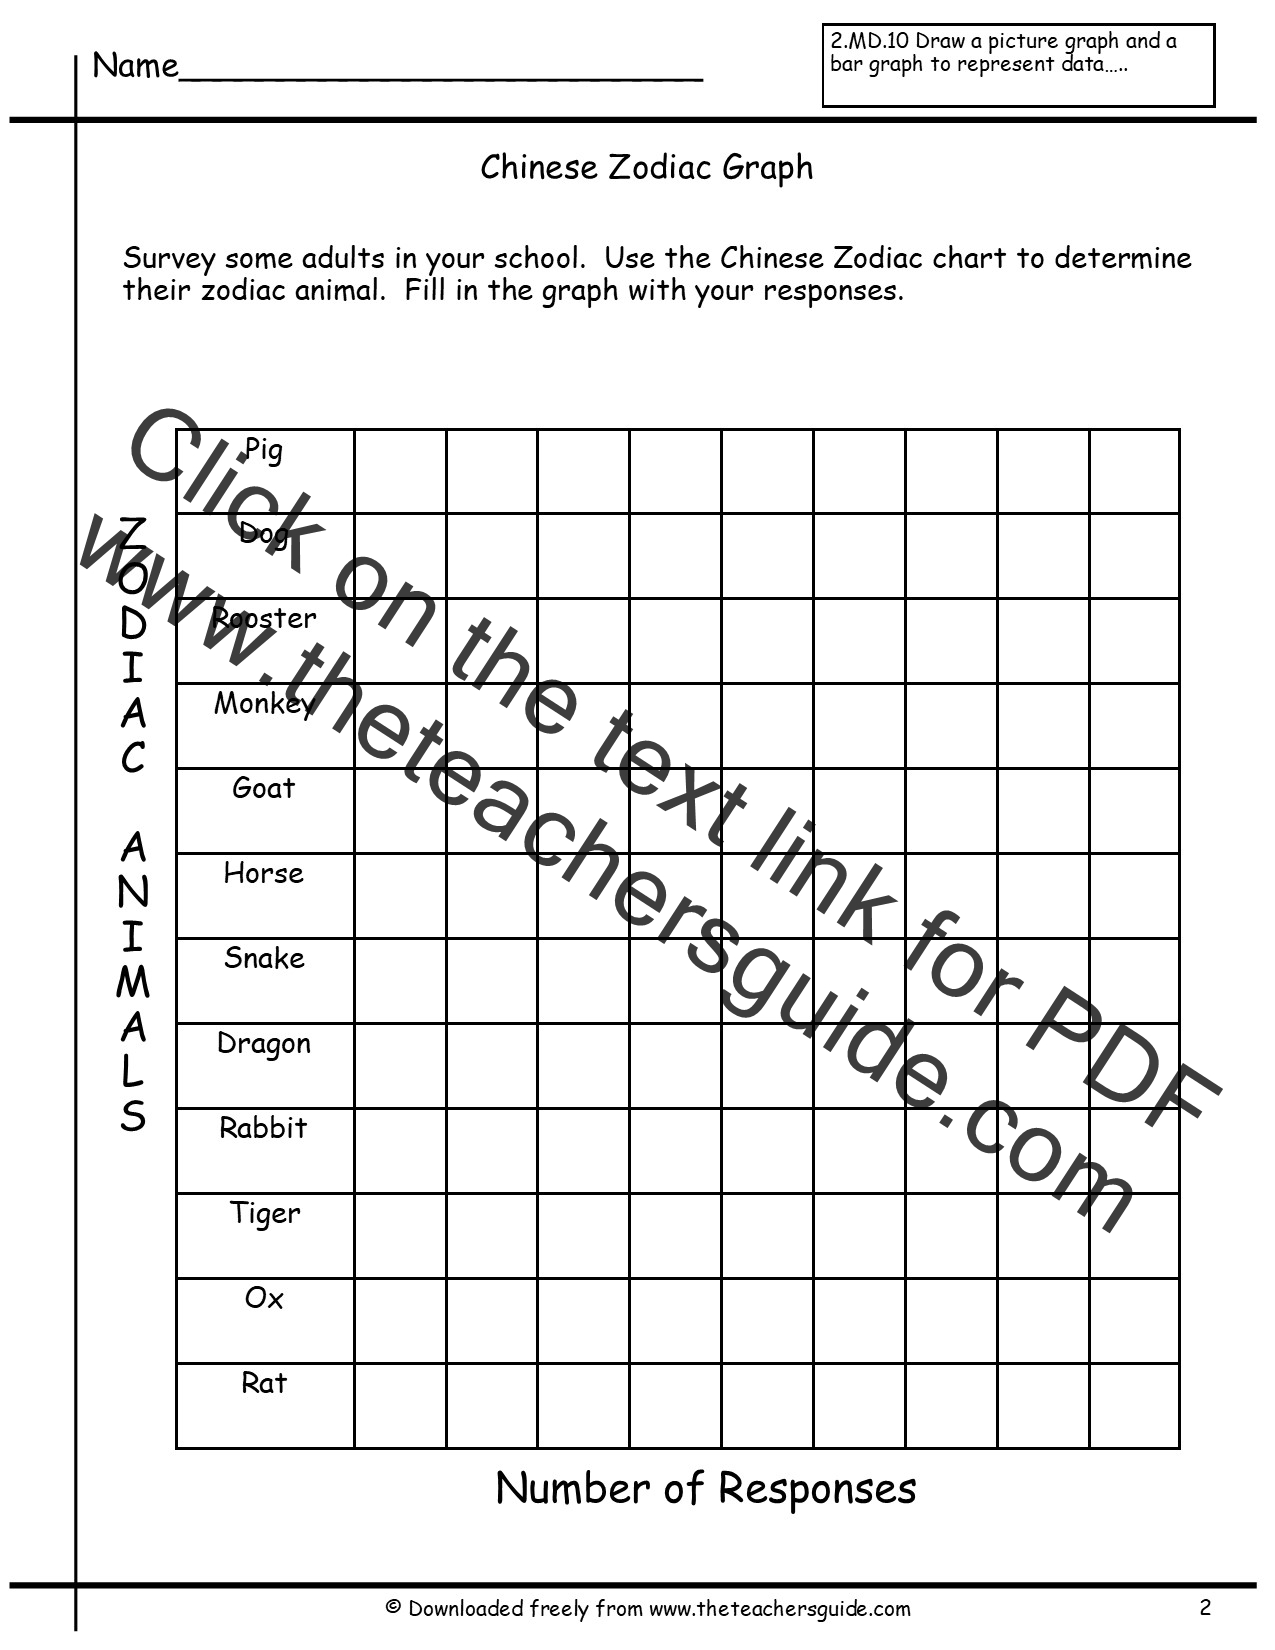 Reading And Creating Bar Graphs Worksheets From The Teacher S Guide